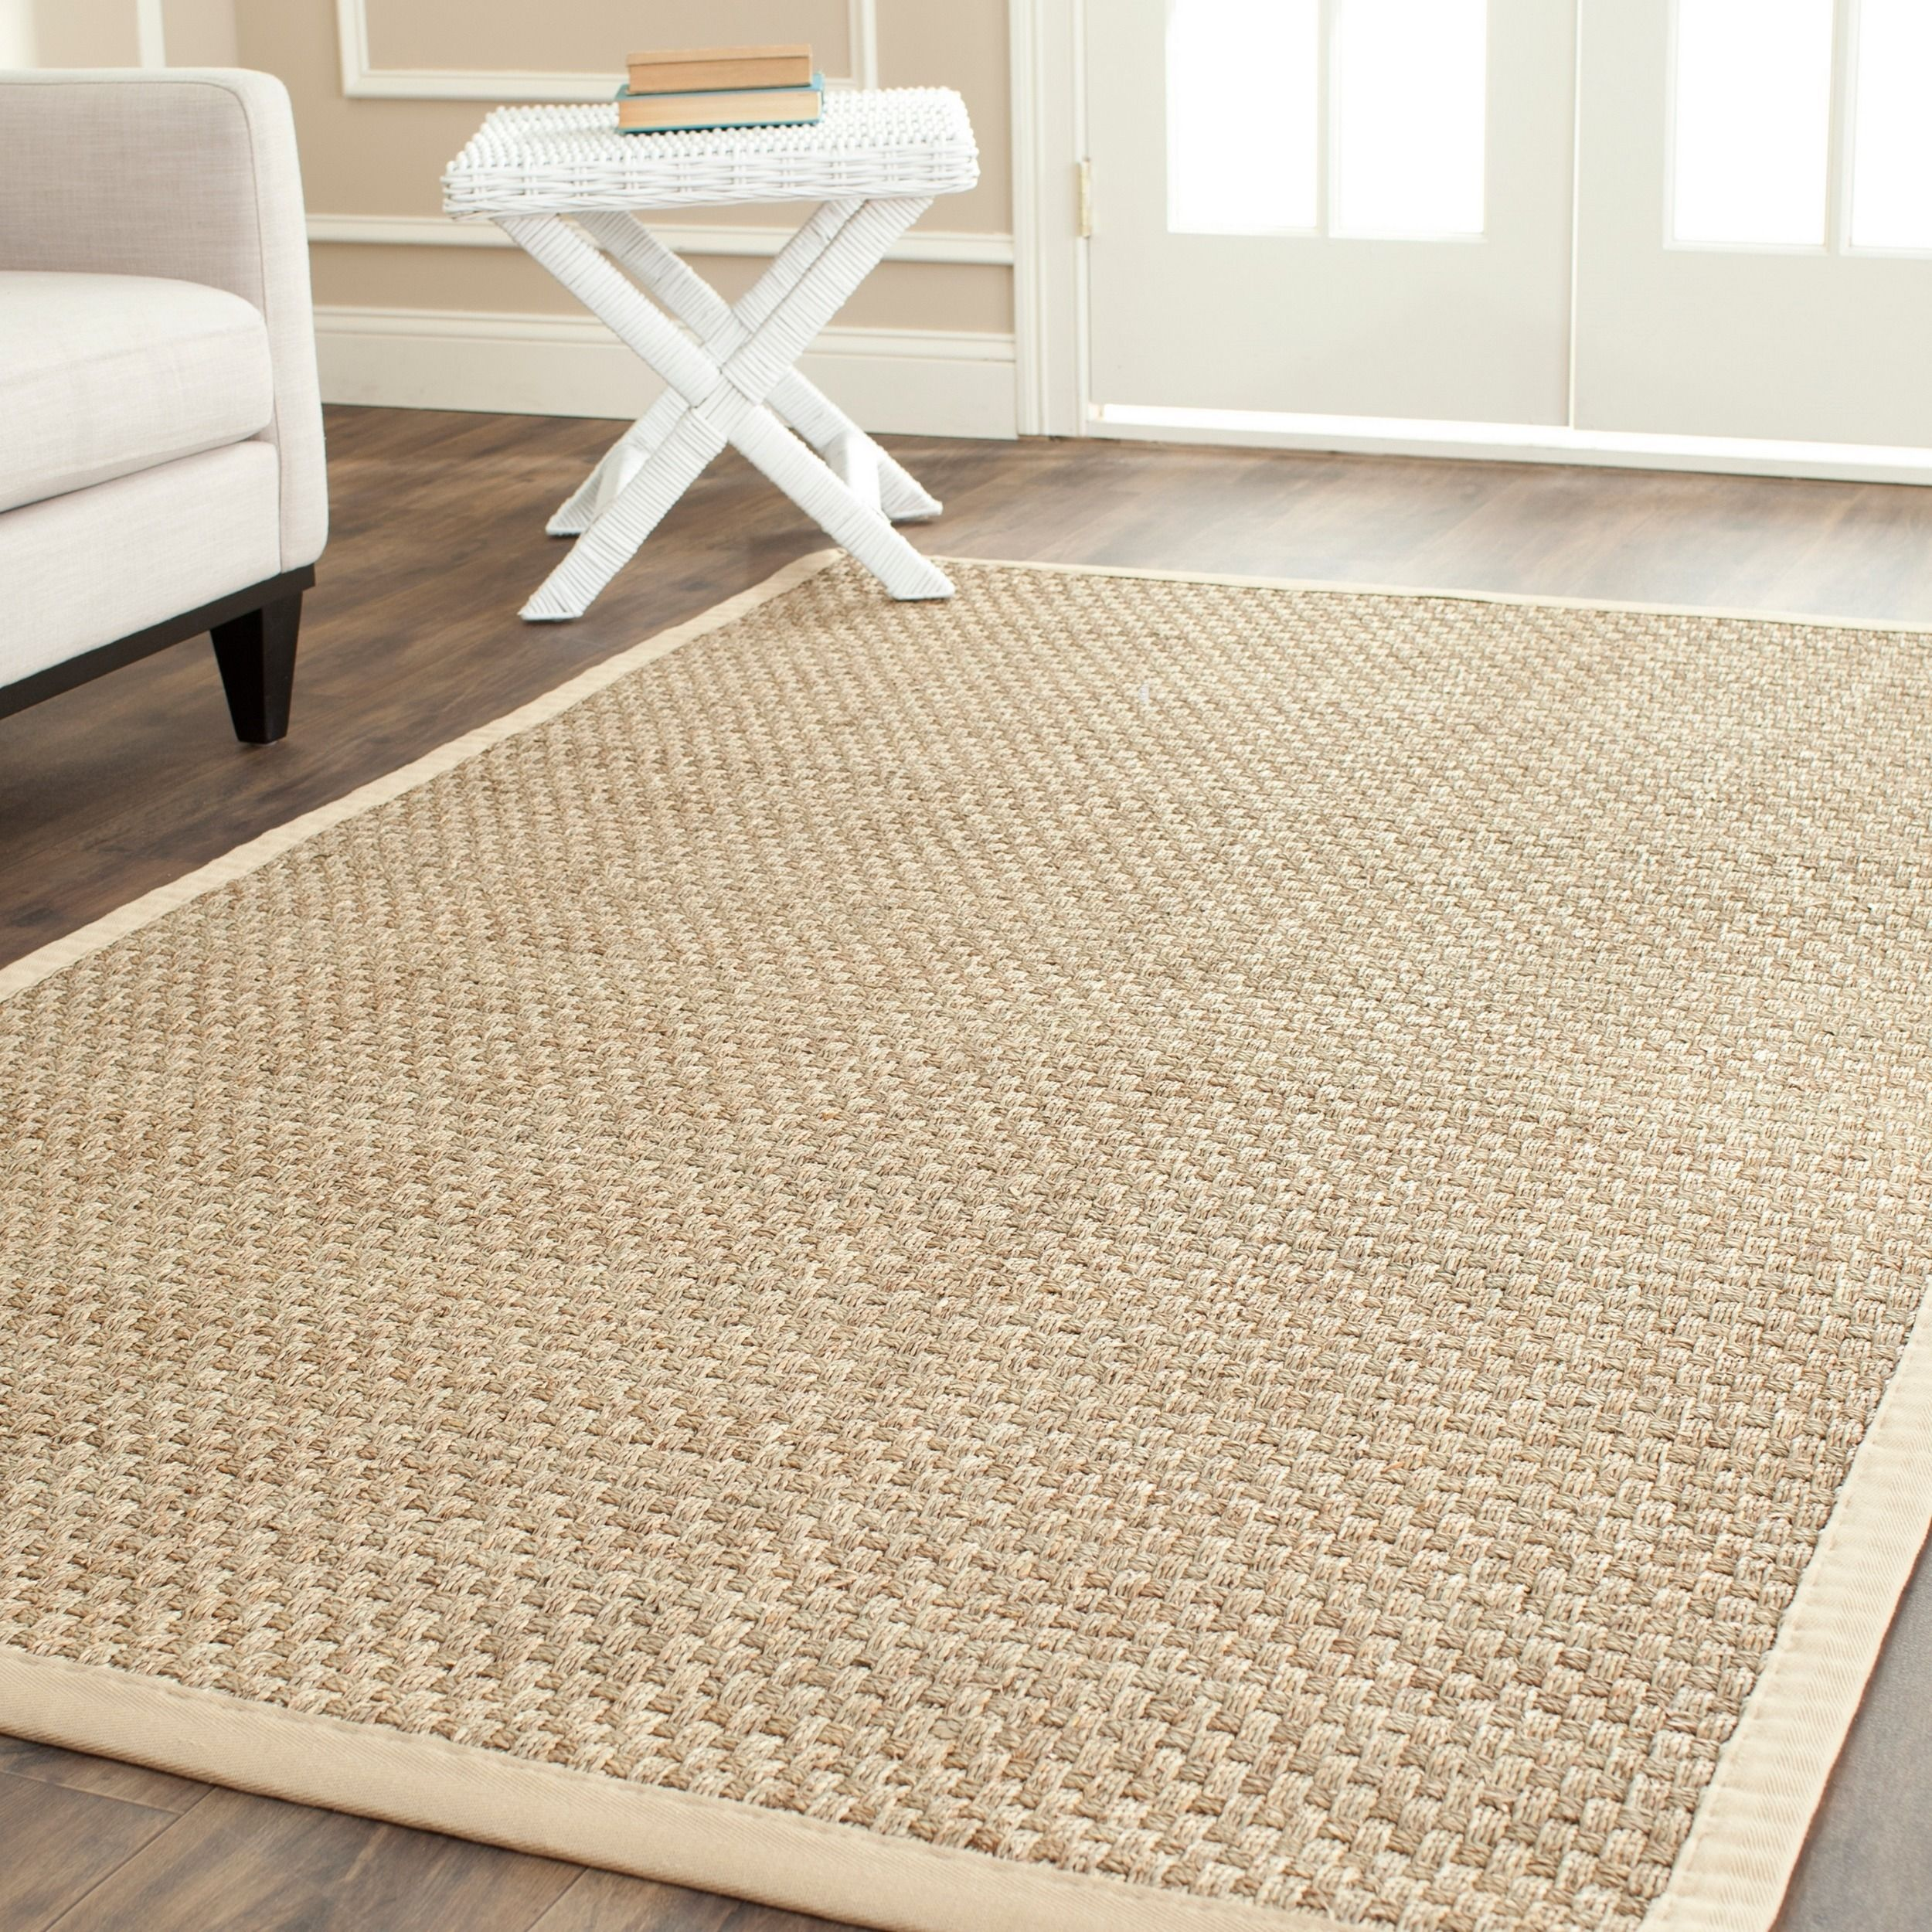 Safavieh Hand-woven Sisal Natural/ Beige Seagrass Rug (6' x 9') - Overstock Shopping - Great Deals on Safavieh 5x8 - 6x9 Rugs